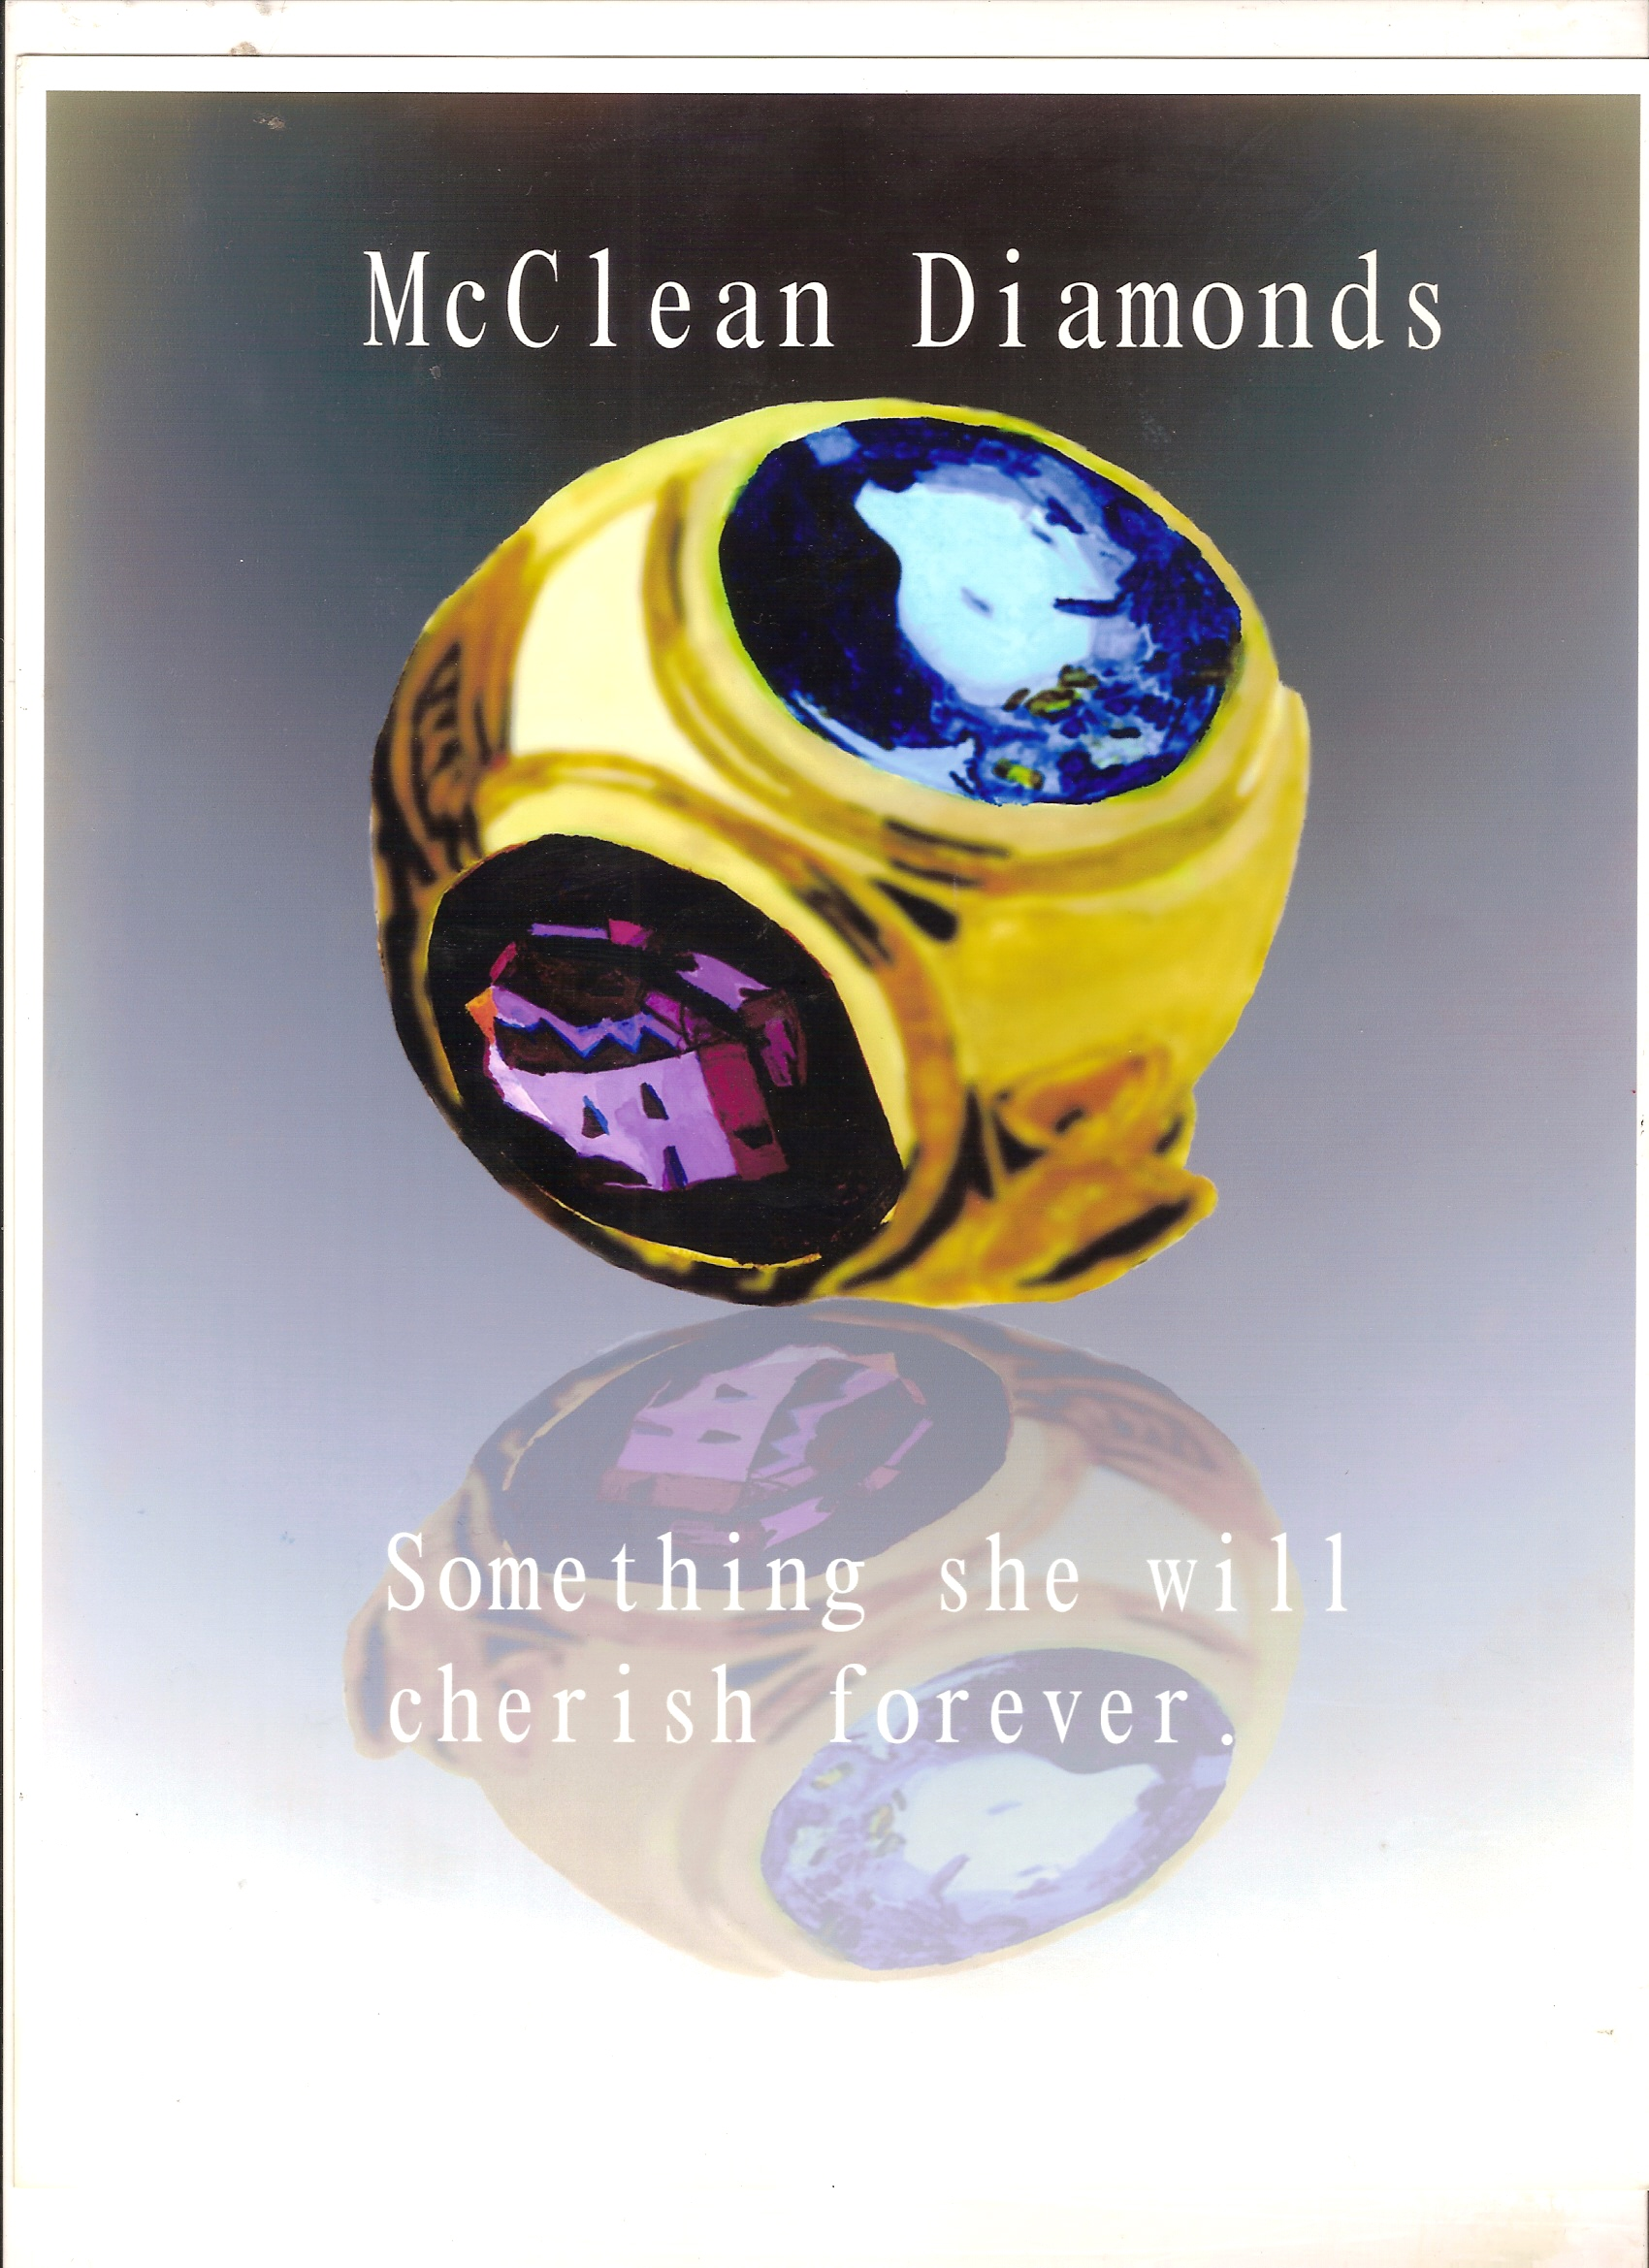 Mclean Diamonds